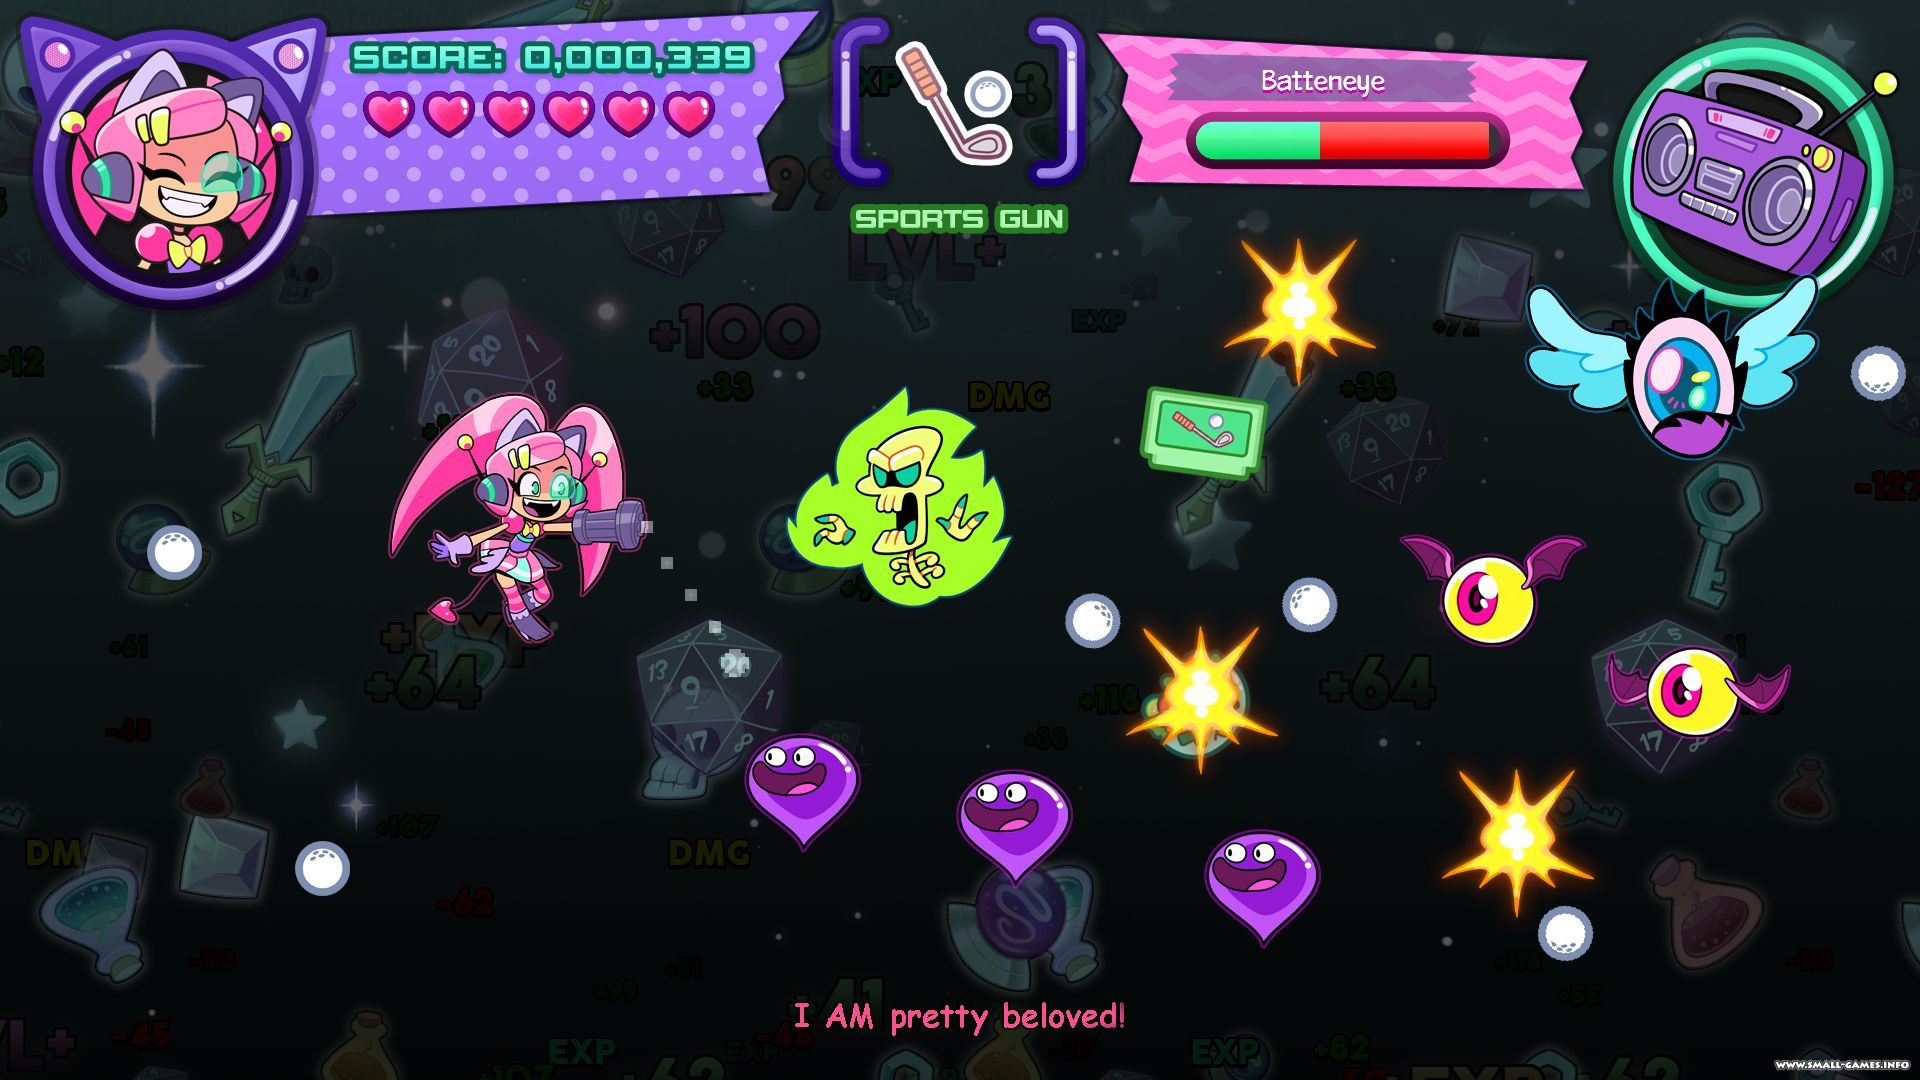 cat girl dating games We have over 204 of the best dating games for you play online for free at kongregate, including crush crush, chrono days sim date, and kingdom days sim date.